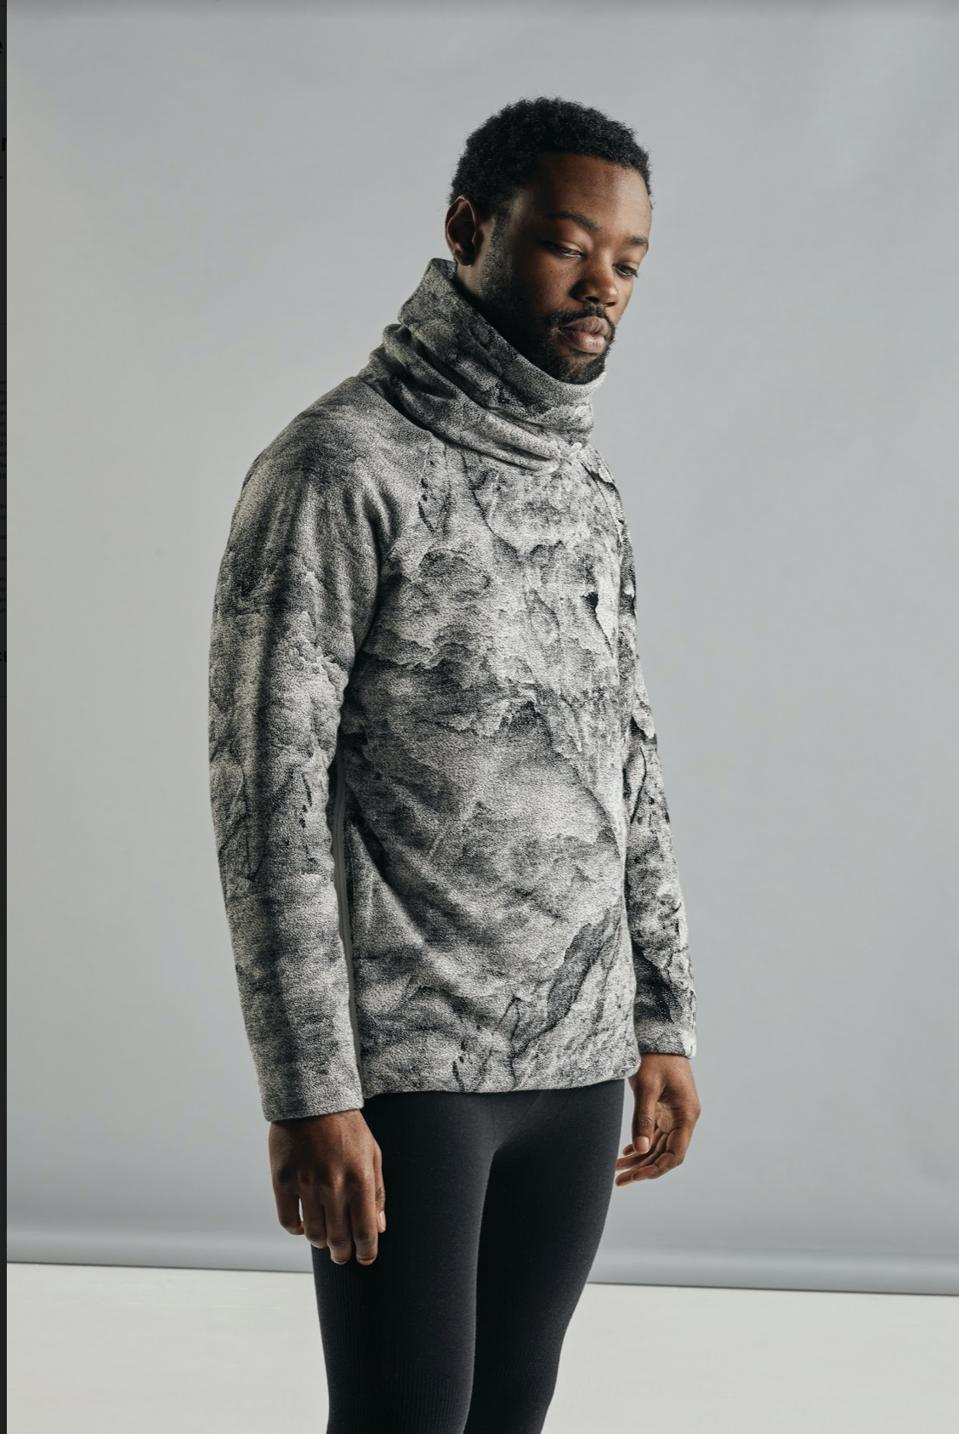 The icebreaker Unisex MerinoLoft™ IB Glacier Long Sleeve Pullover Sweater combines nature, style and activism in one stunning piece, part of a greater collaborative collection.